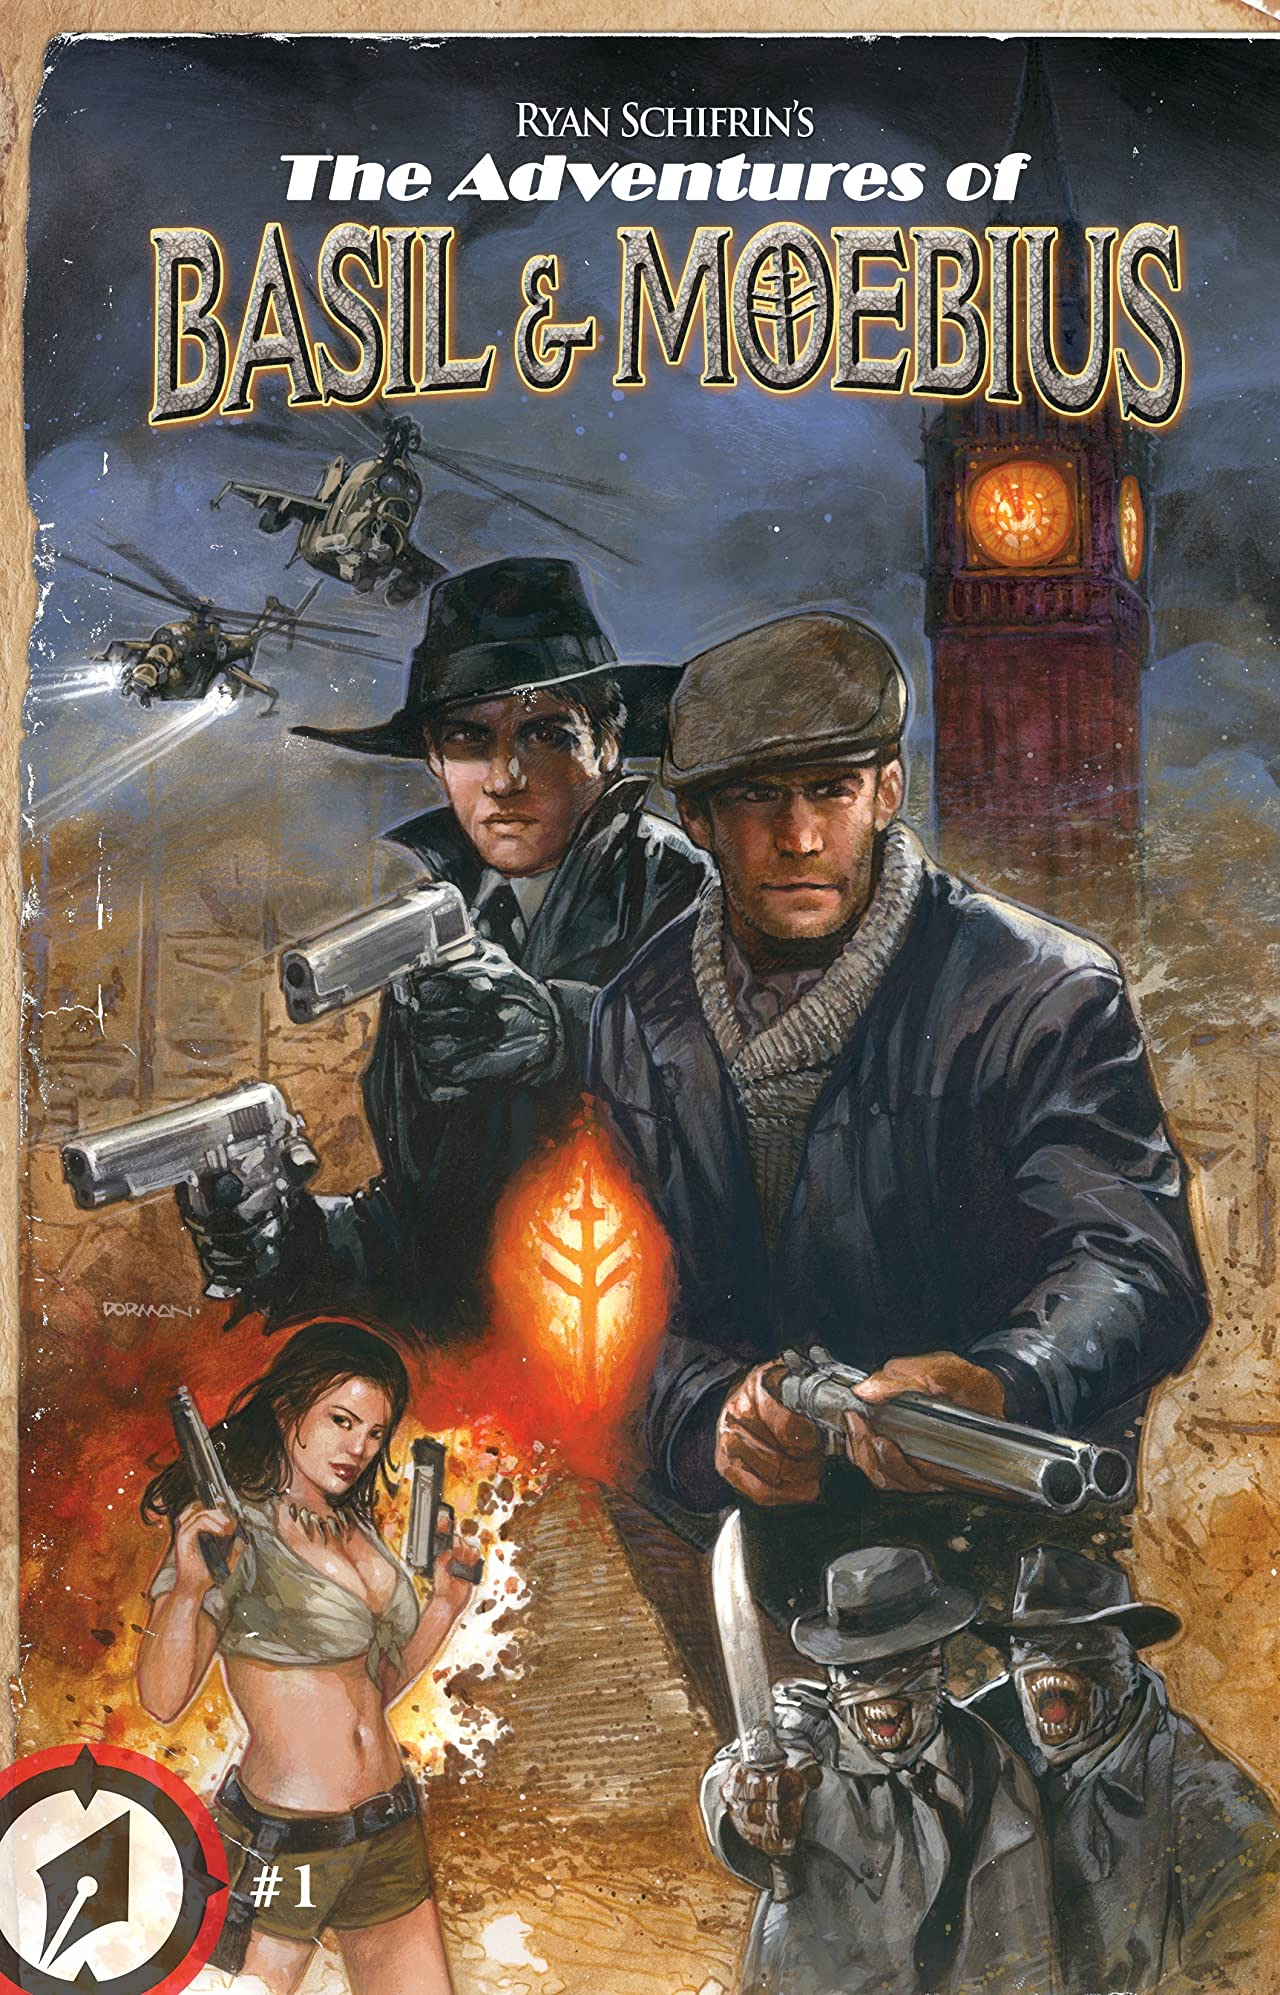 The Adventures of Basil and Moebius #1